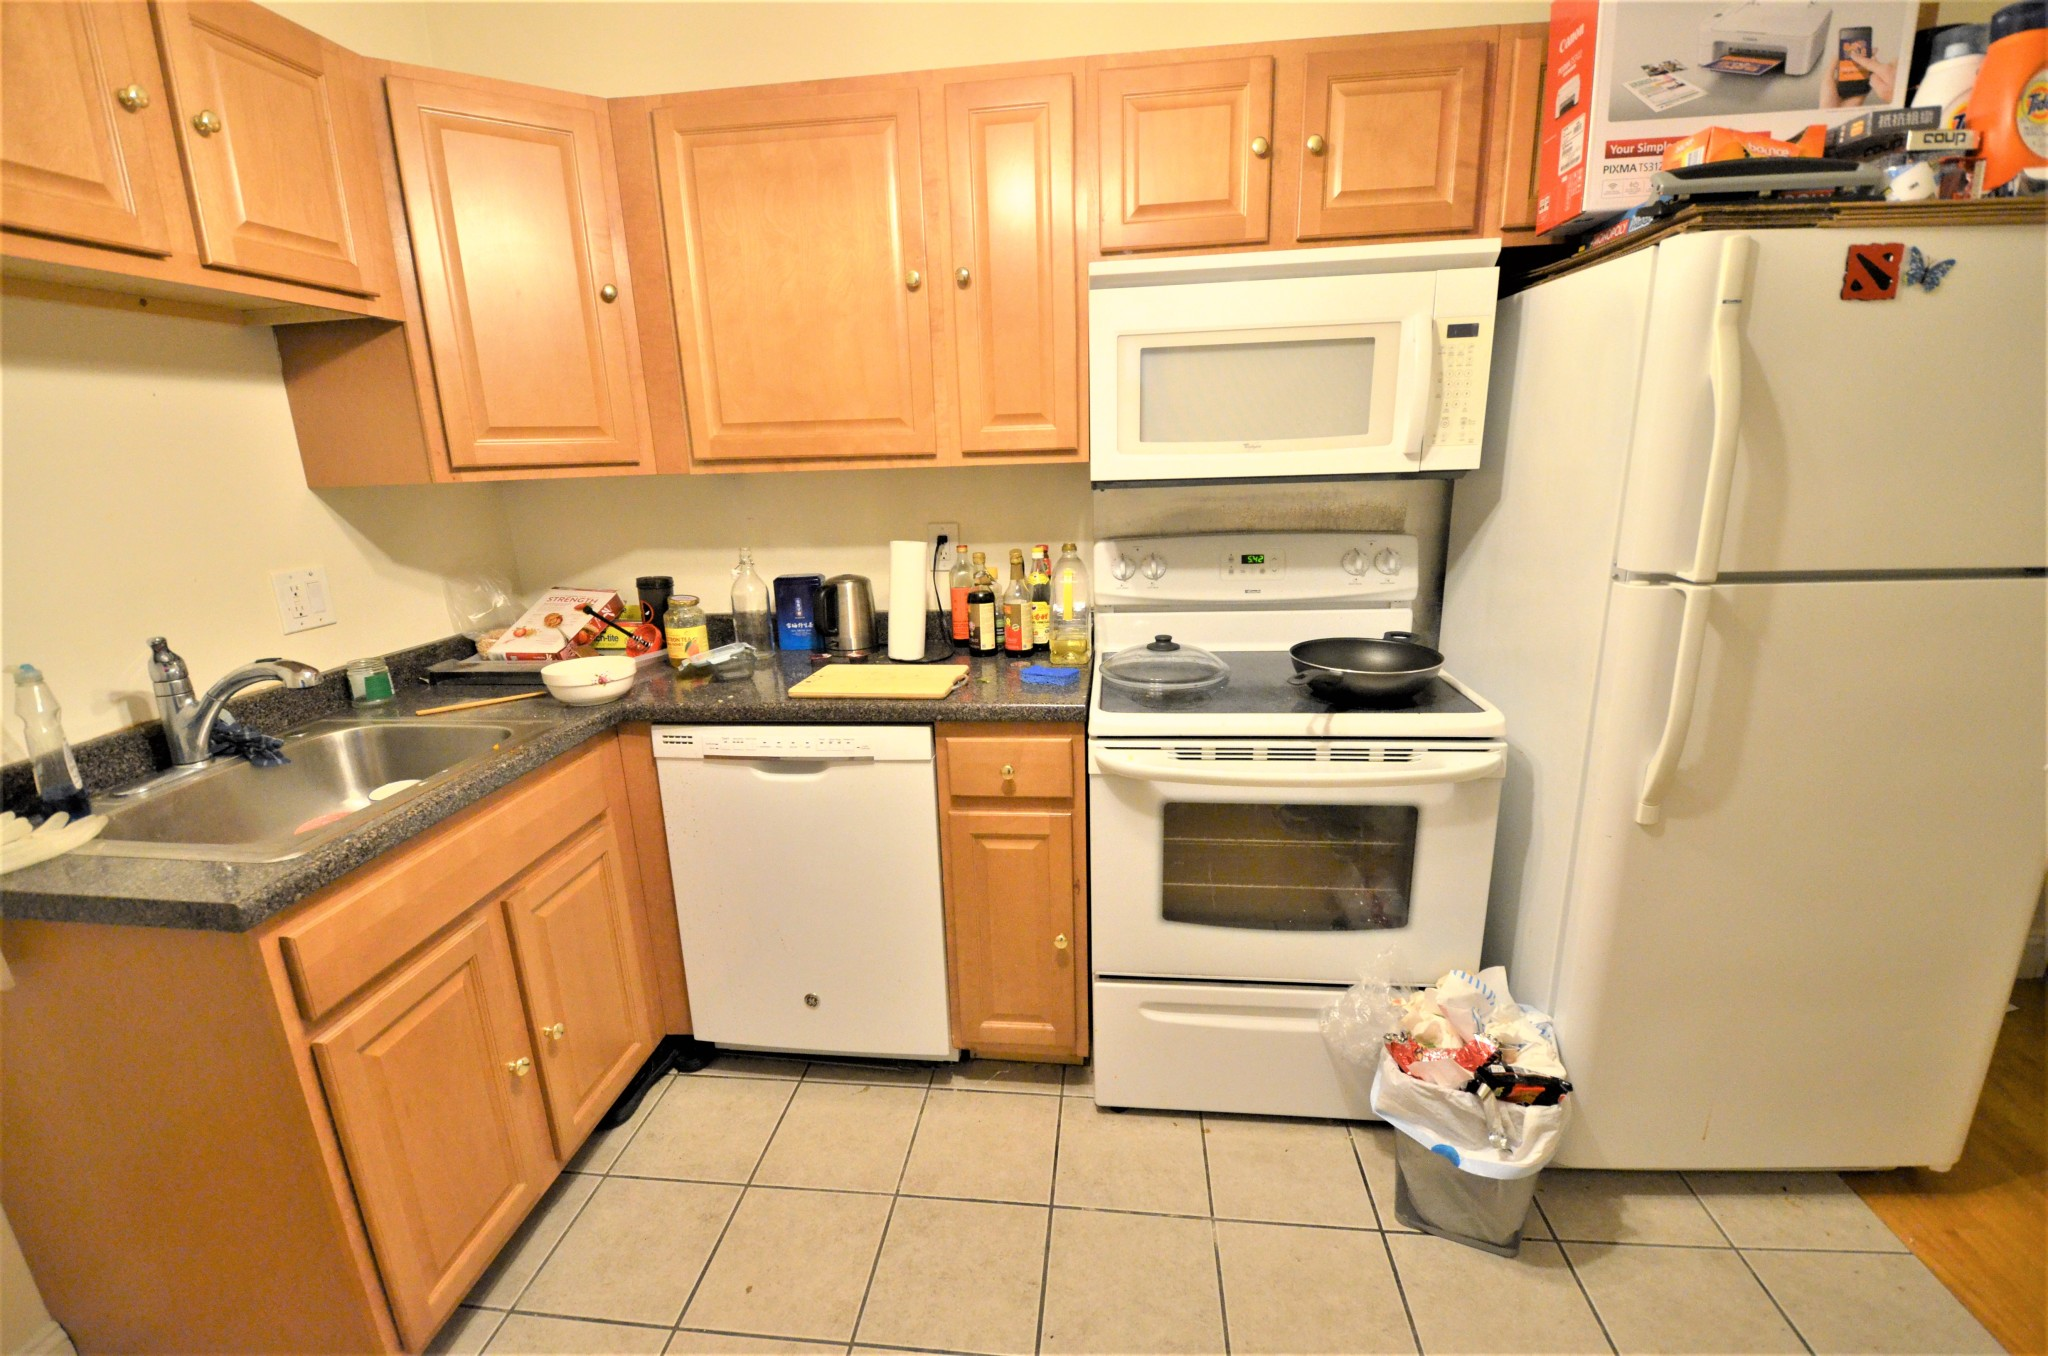 Avail 9/1 - Renovated, Spacious 1 bed split